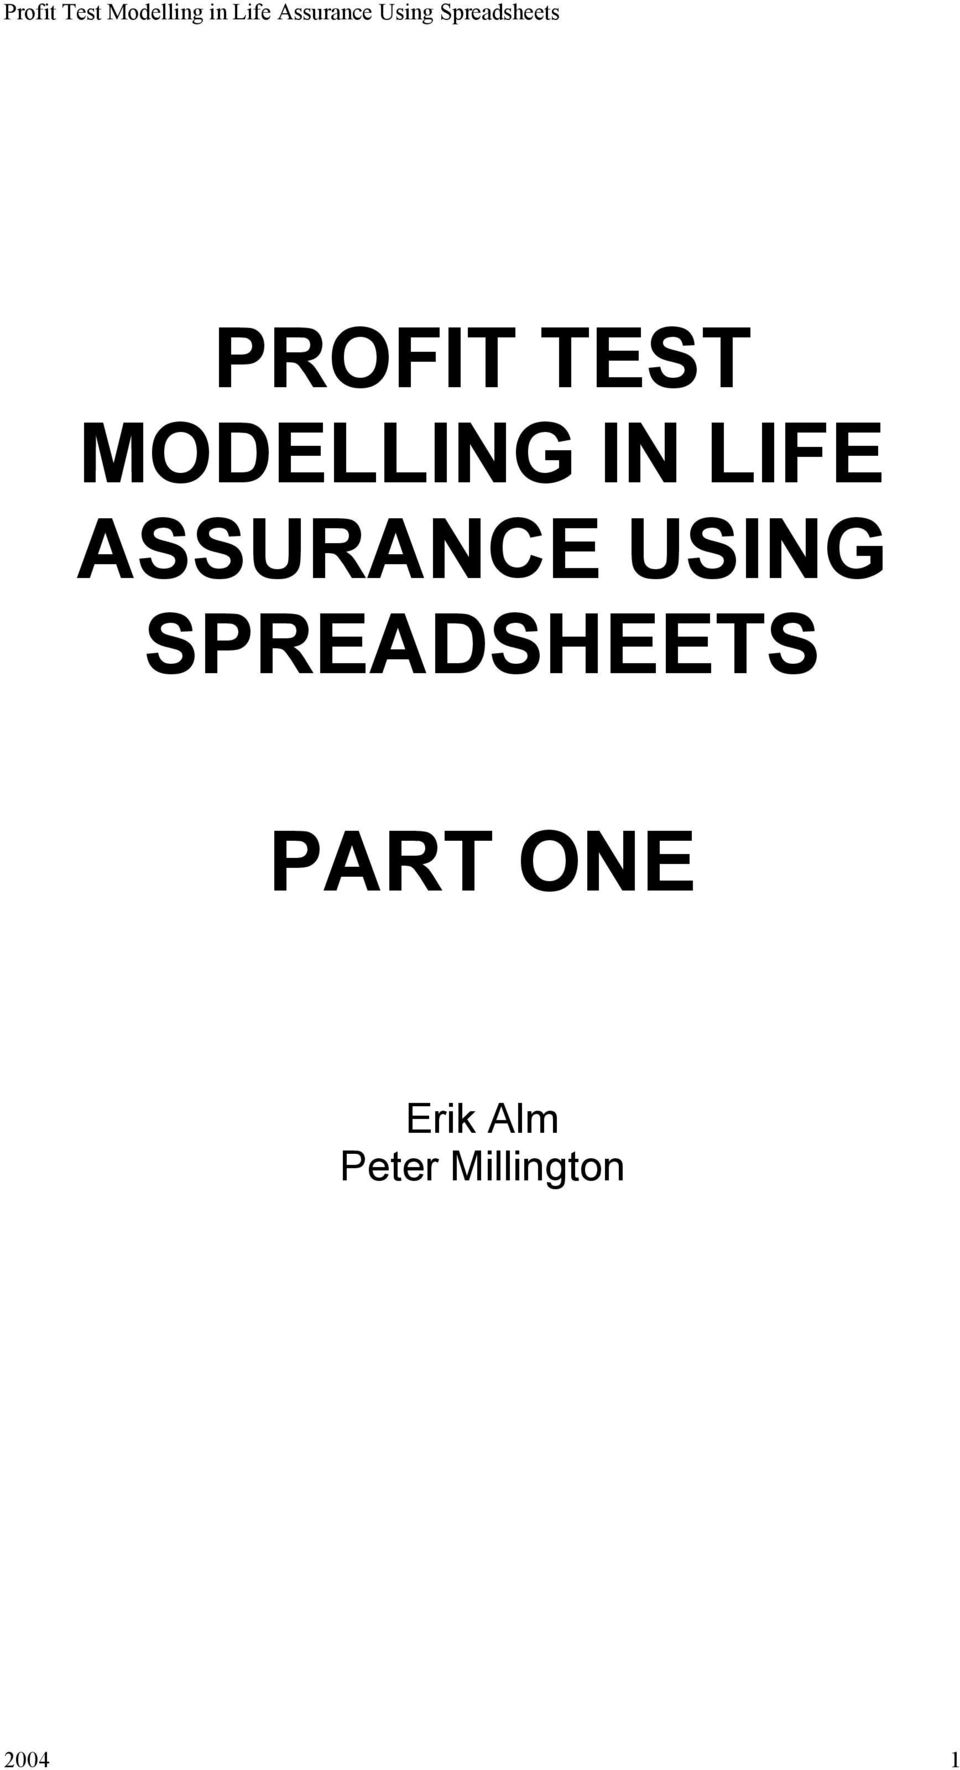 MODELLING IN LIFE ASSURANCE USING